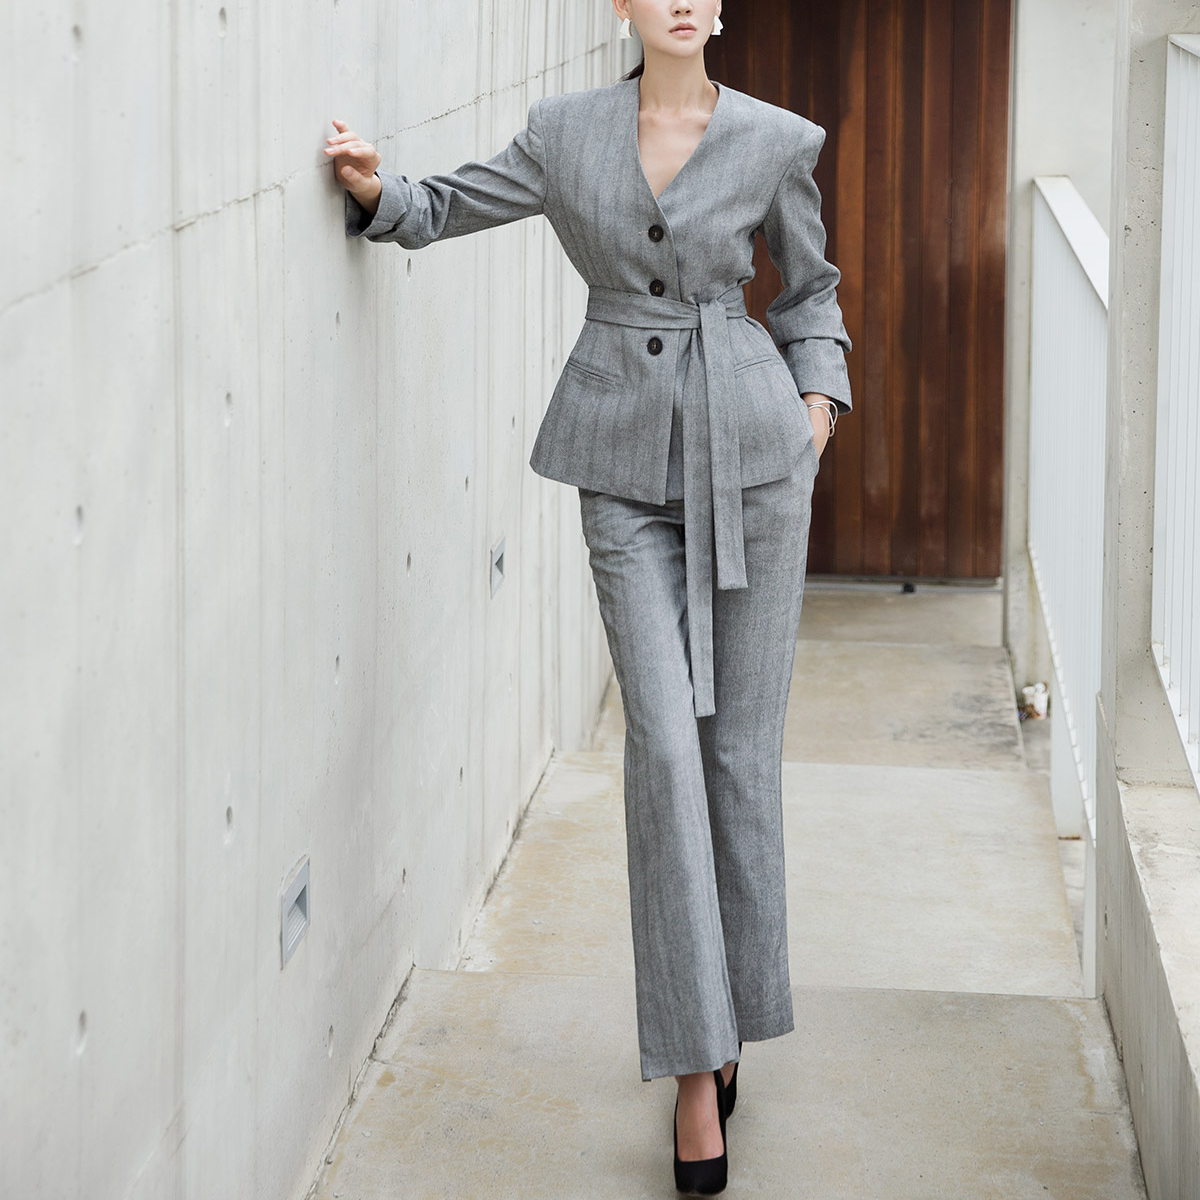 TP1005 No-collar Herringbone Line Setup Suit (JACKETBelt set)